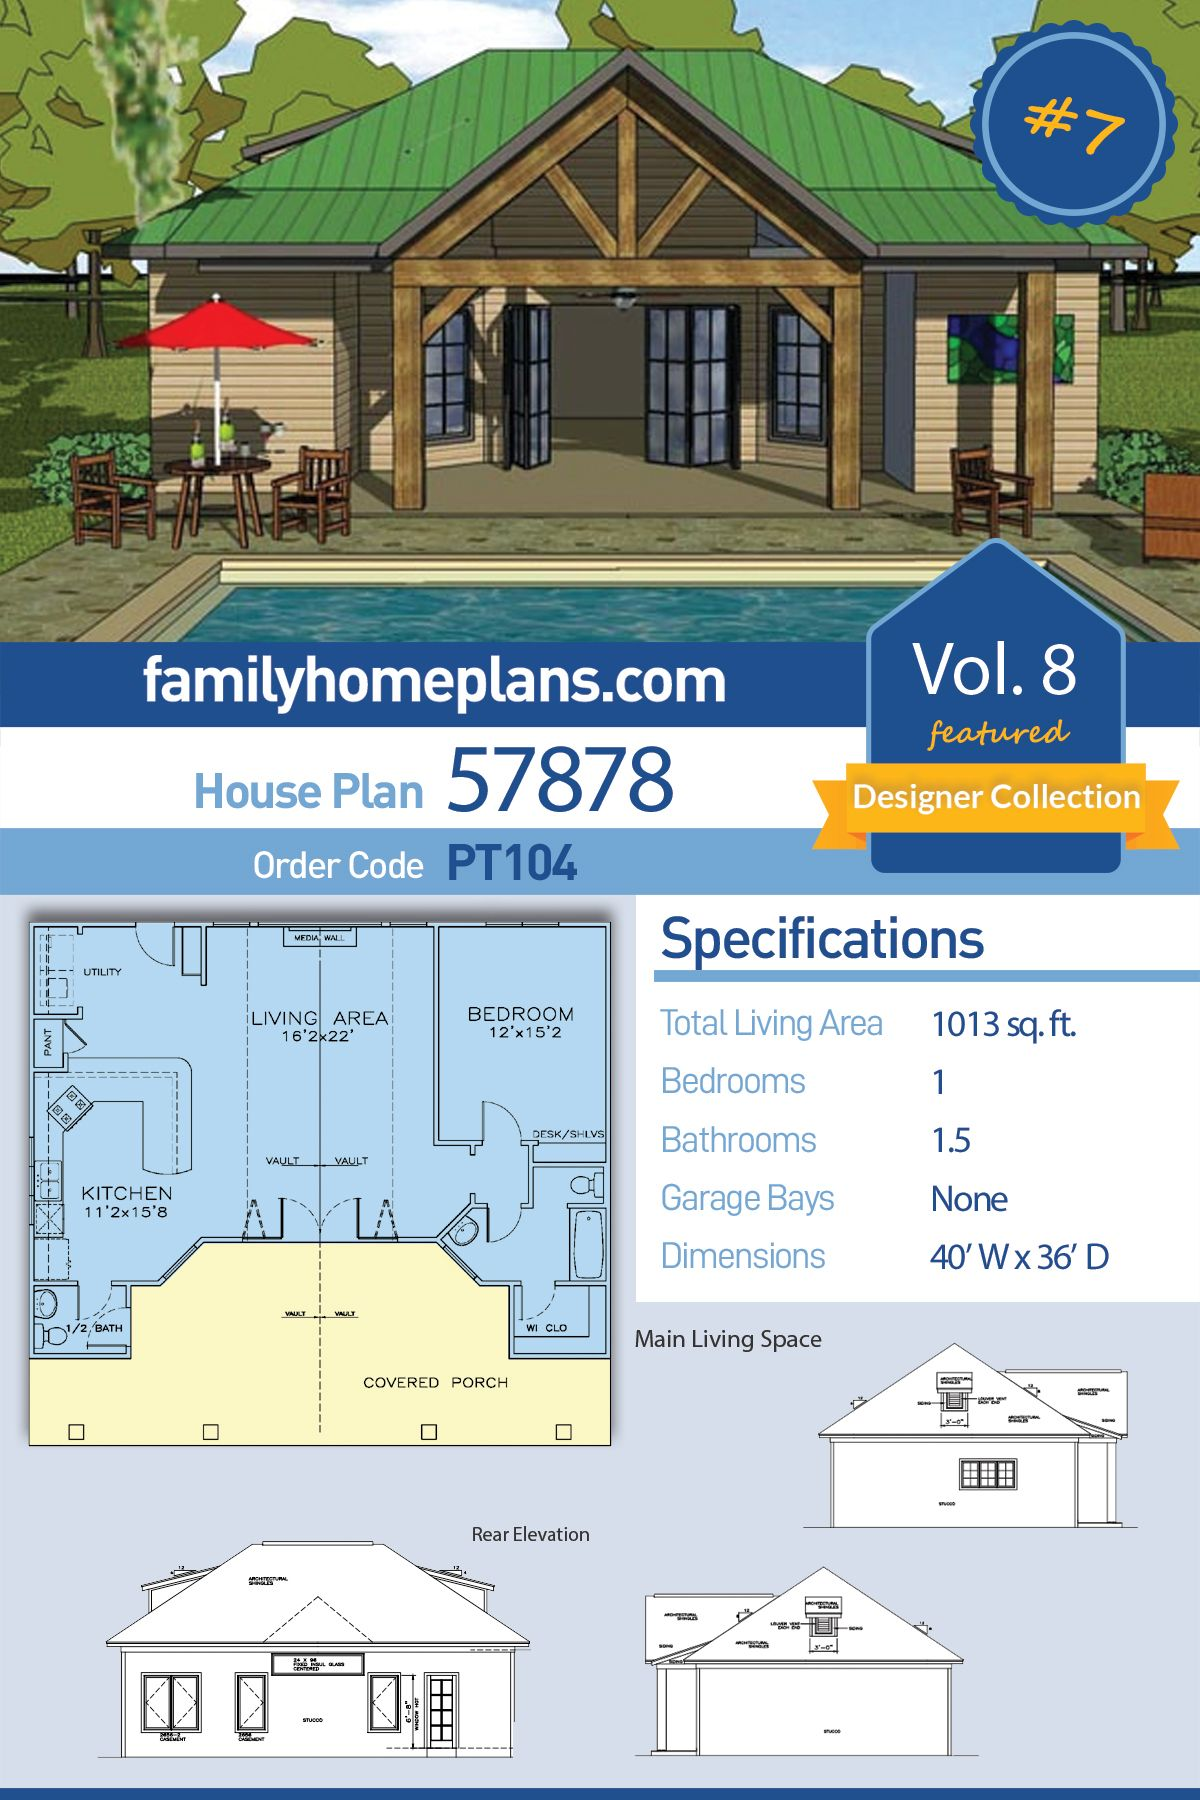 Craftsman Style House Plan 57878 With 1 Bed 2 Bath Pool House Plans Craftsman Style House Plans Family House Plans